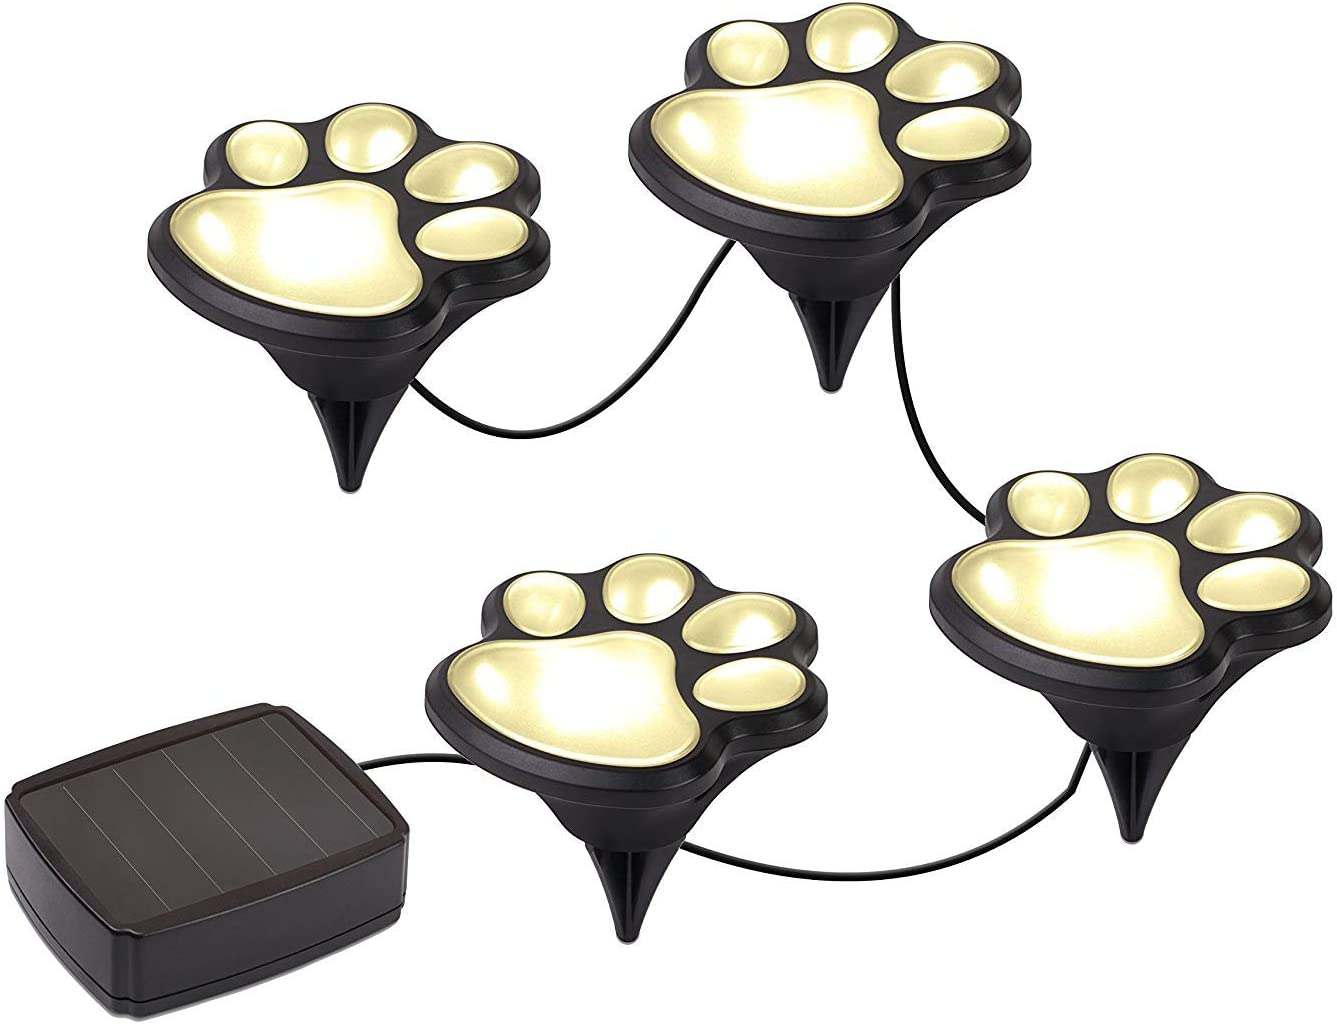 Feadem 4pcs White LED Light Solar Decorative Paw Print Garden Lights - Solar Powered Paws Home and Garden Walkway Lighting Outdoor Decor, LED Path Lamp